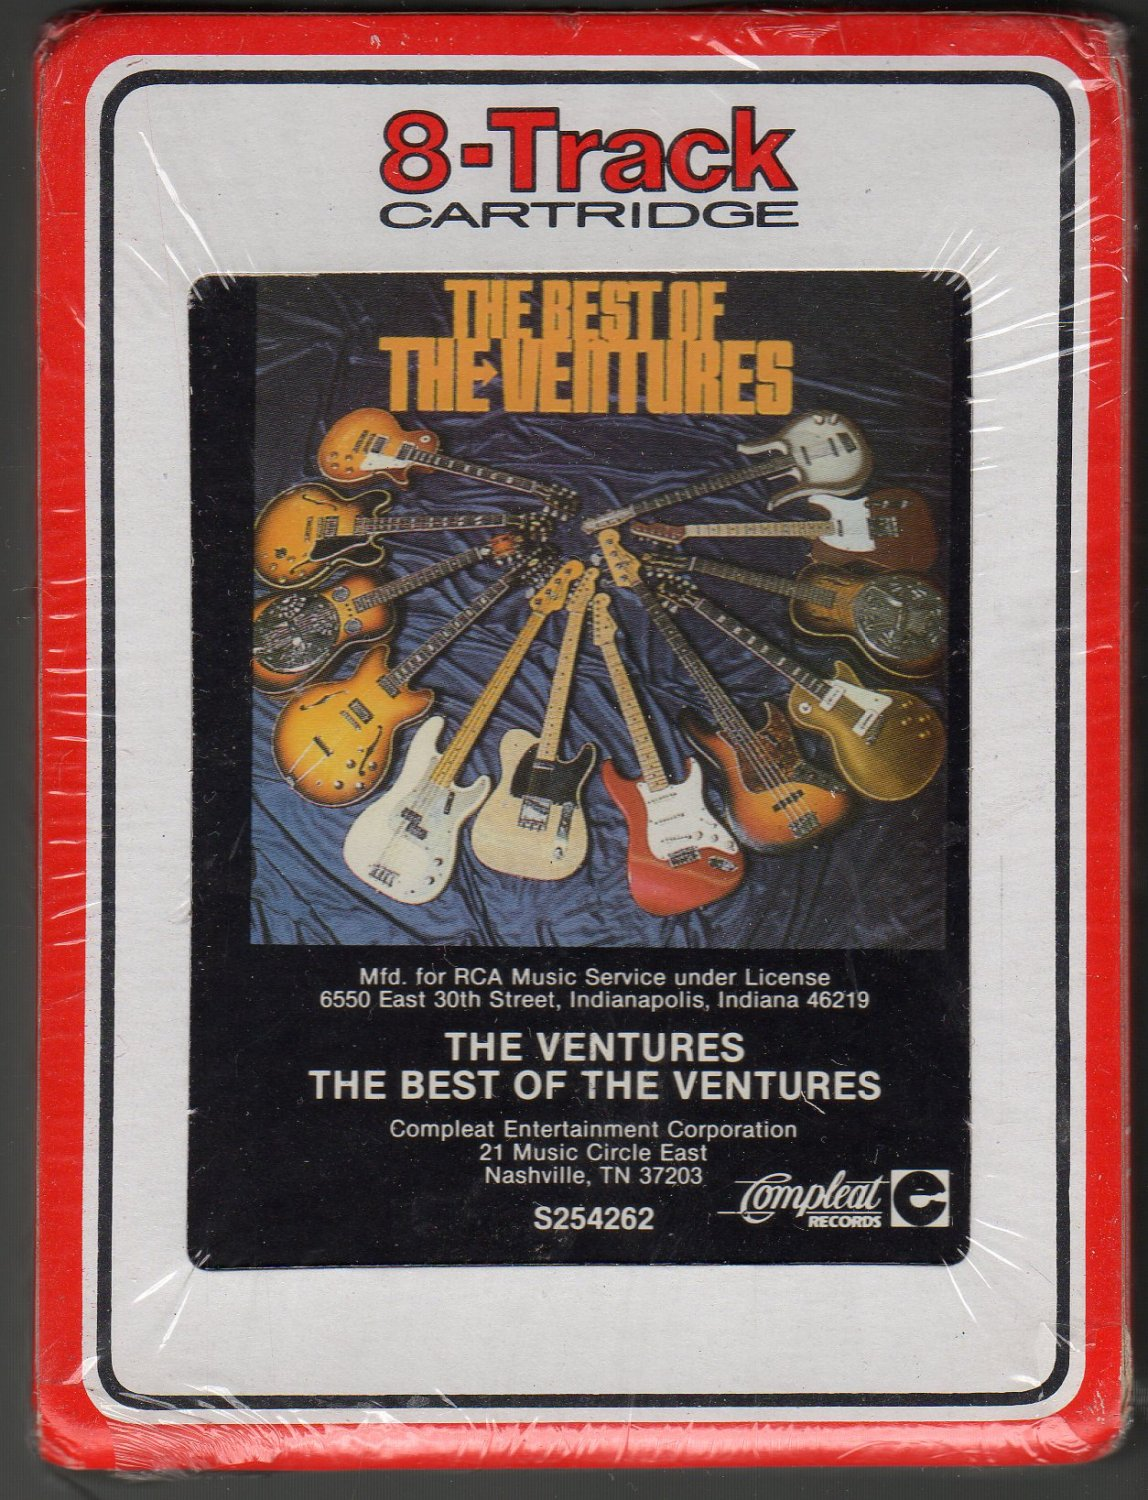 The Ventures - The Best Of The Ventures 1987 RCA Sealed AC2 8-track tape